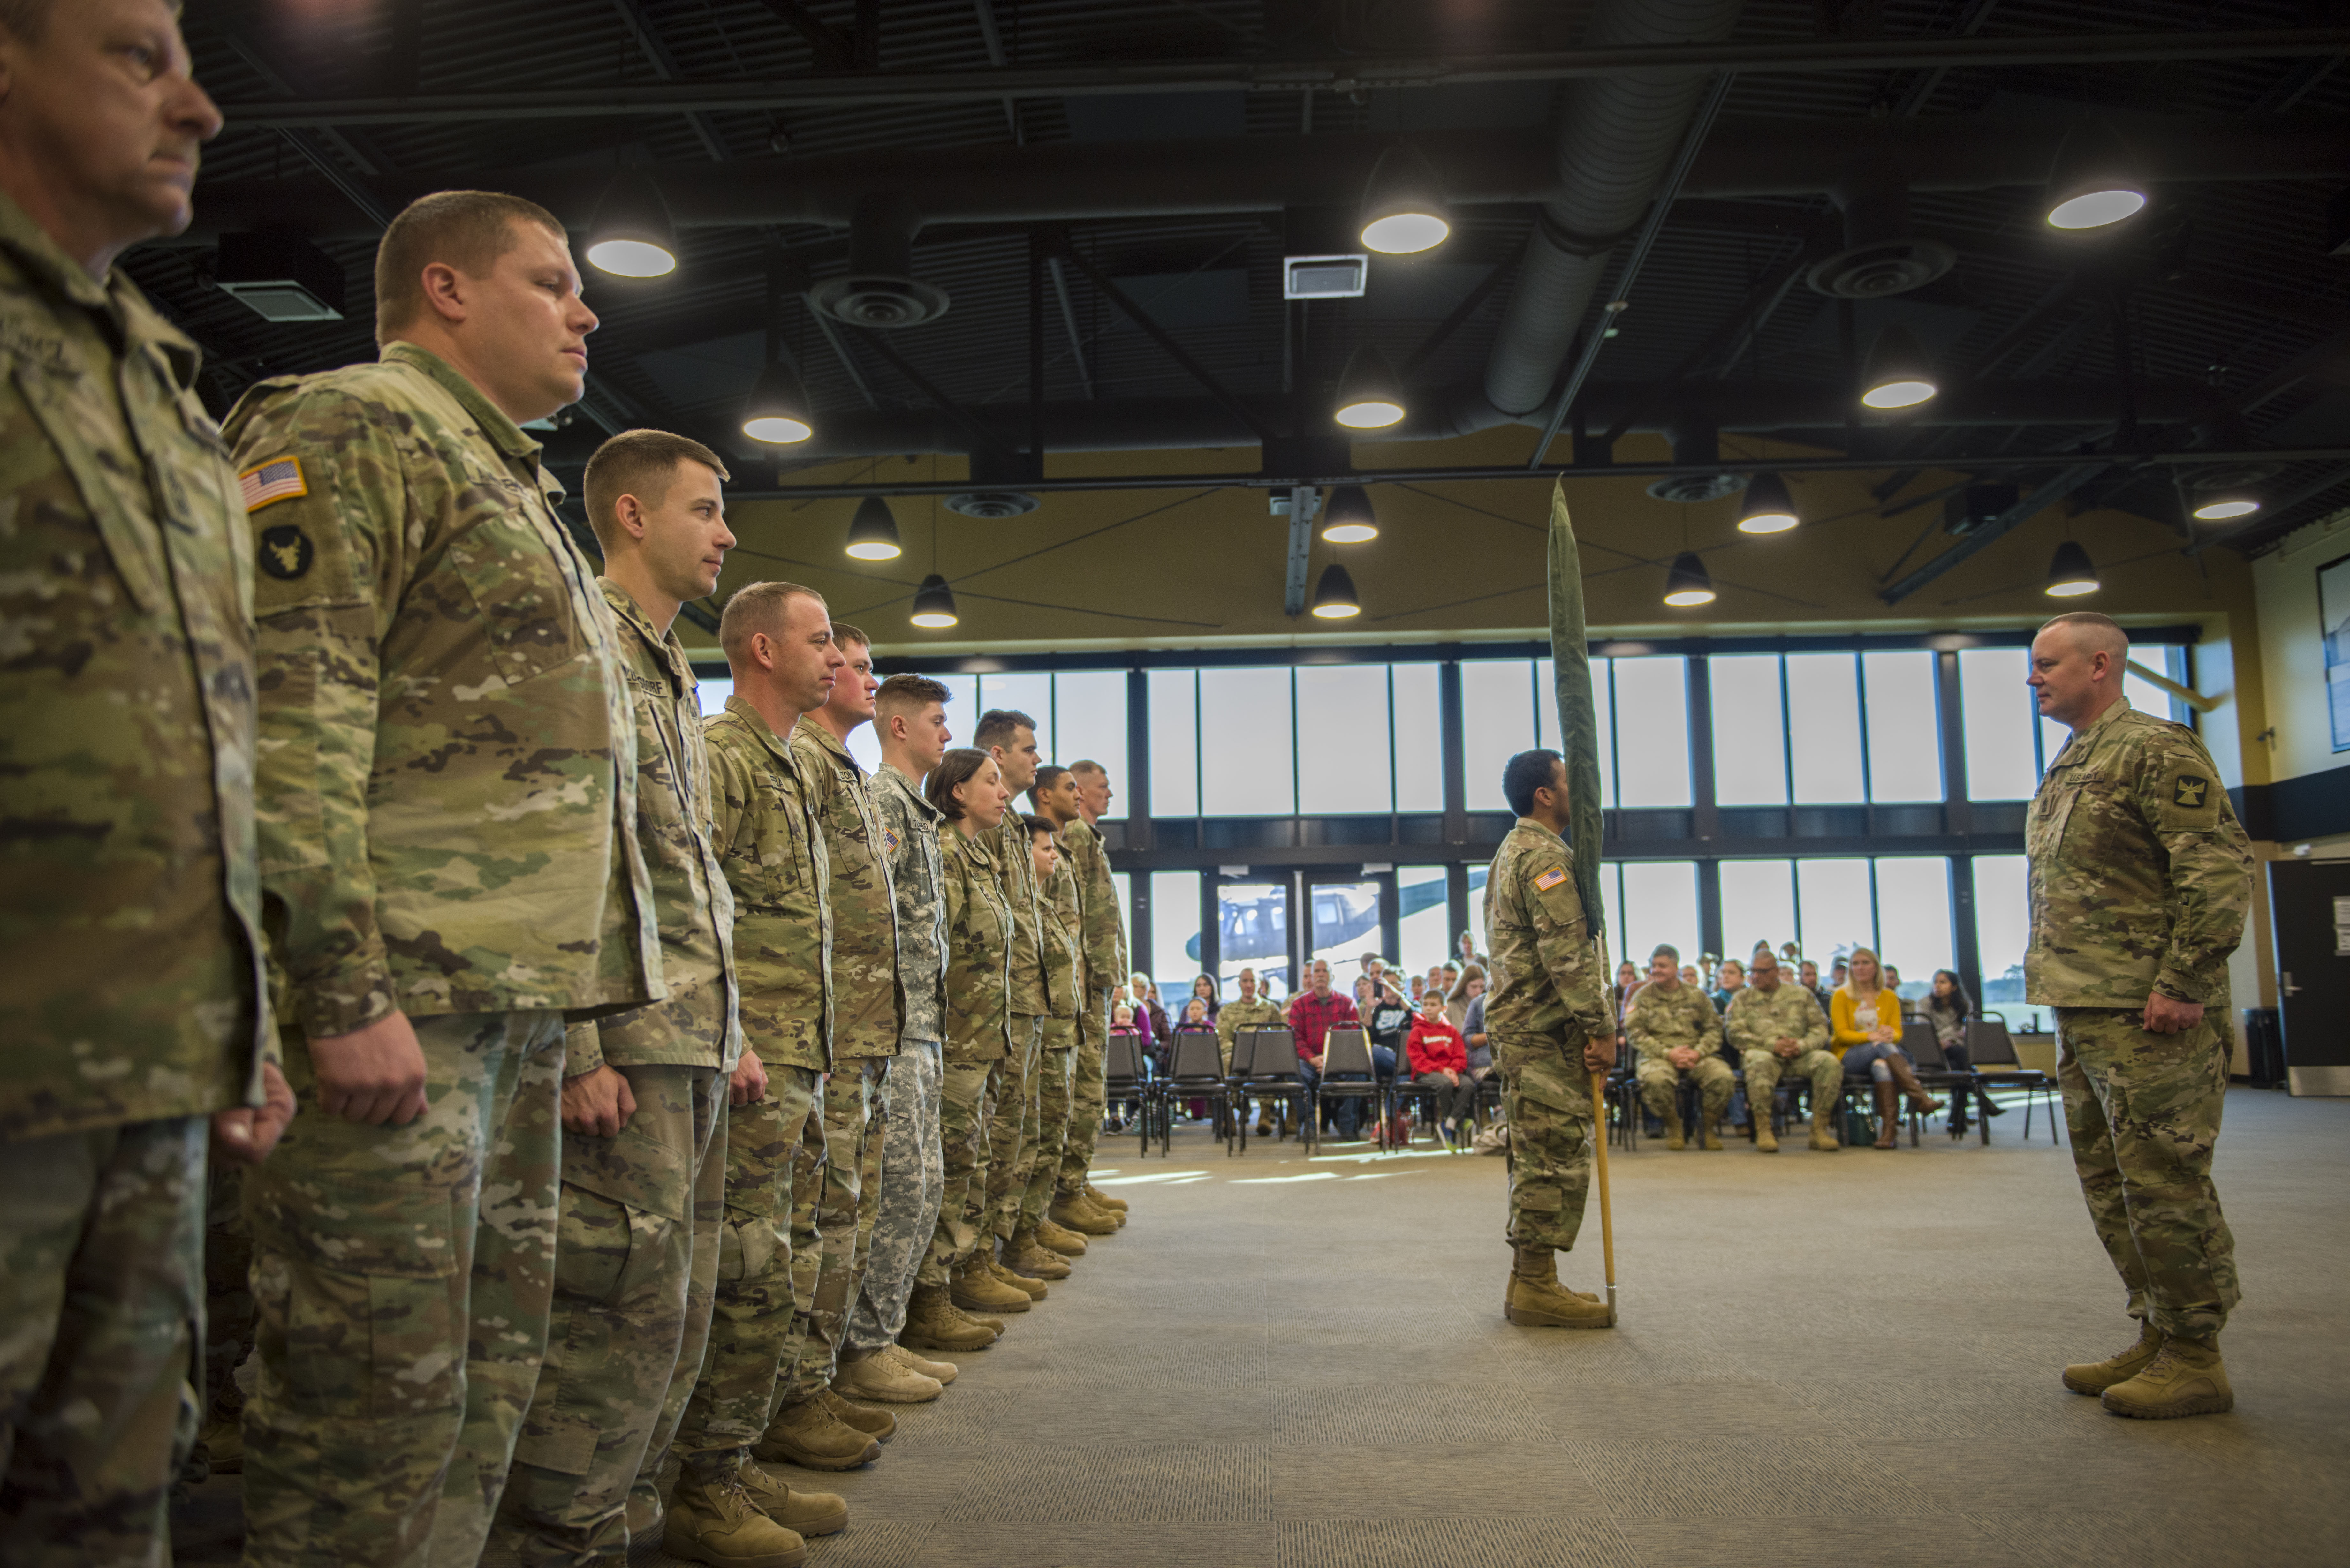 434th Support Maintenance Company activation